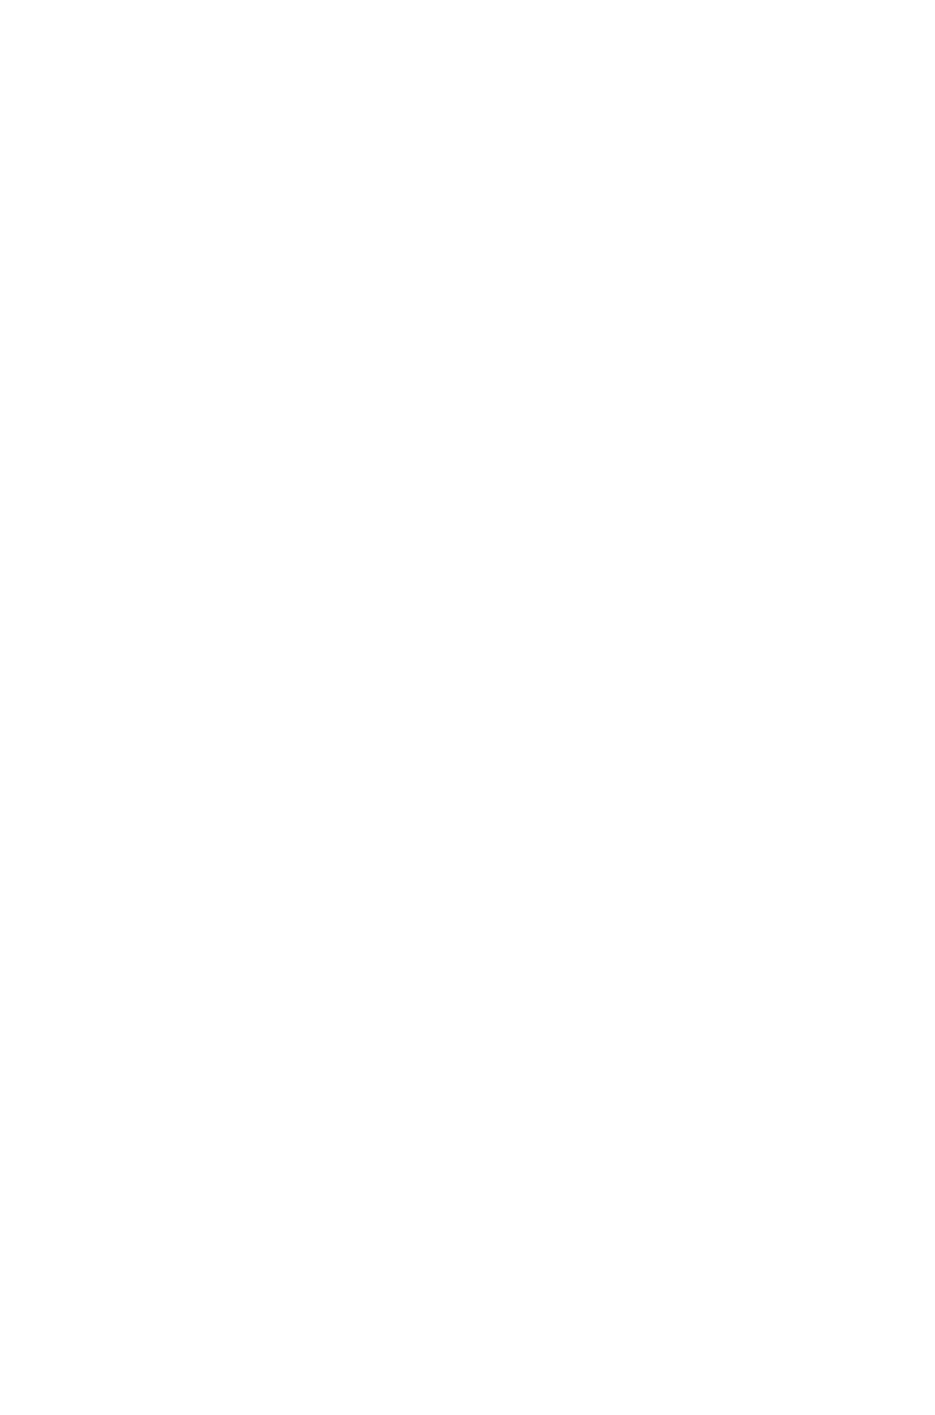 Weltmeister-Kaffee GAKENKE limited edition Cup of Excellence Gewinner Burundi